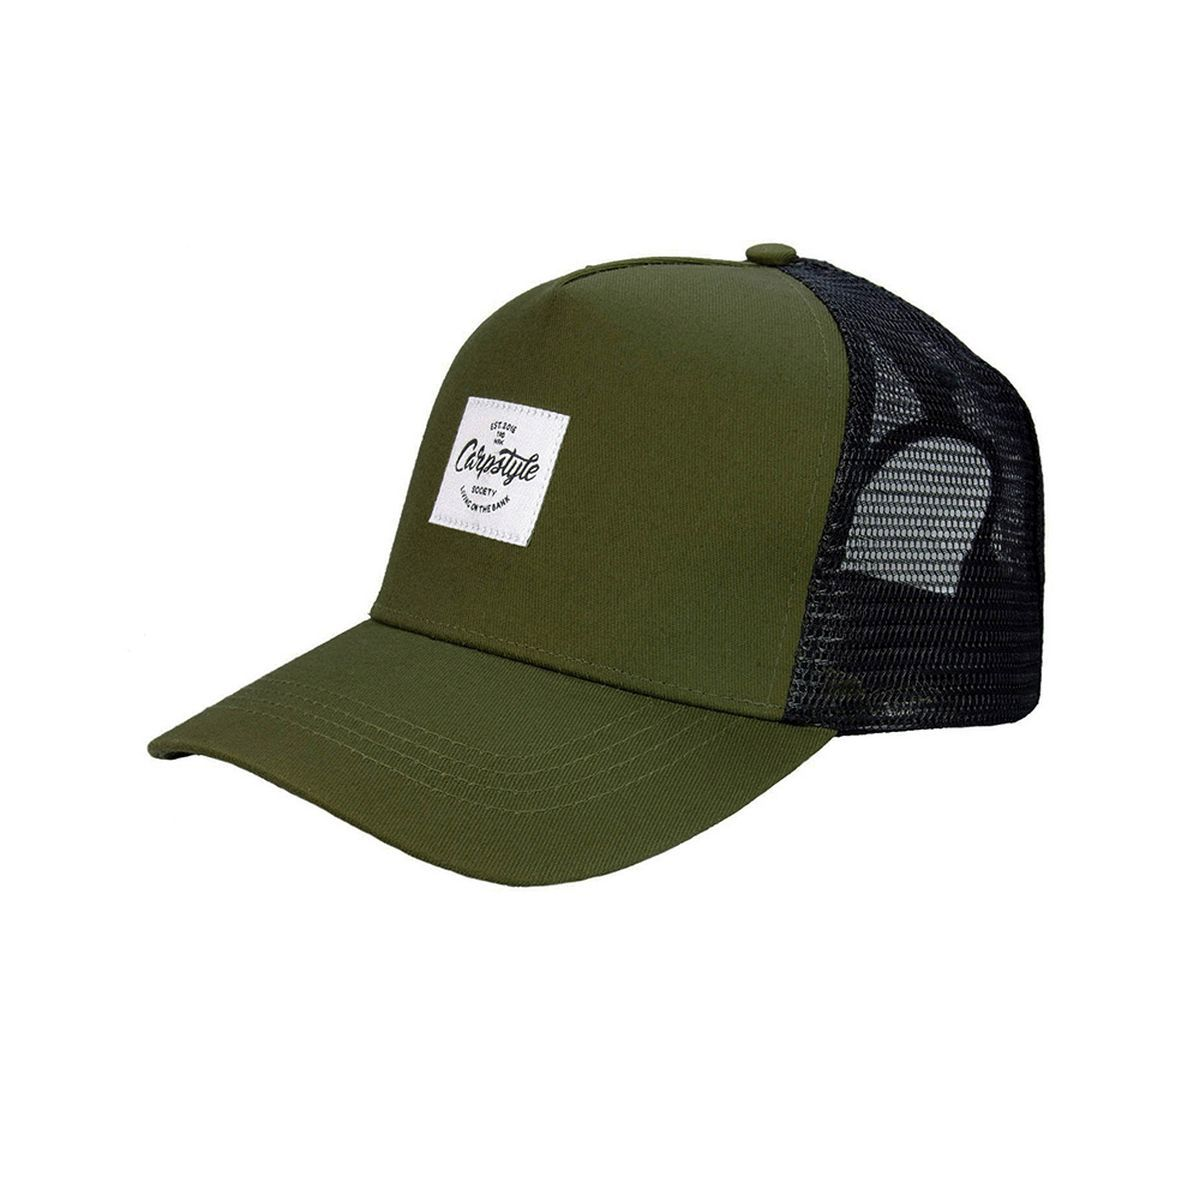 CARPSTYLE Kšiltovka Carpstyle Green Forest Trucker Snap